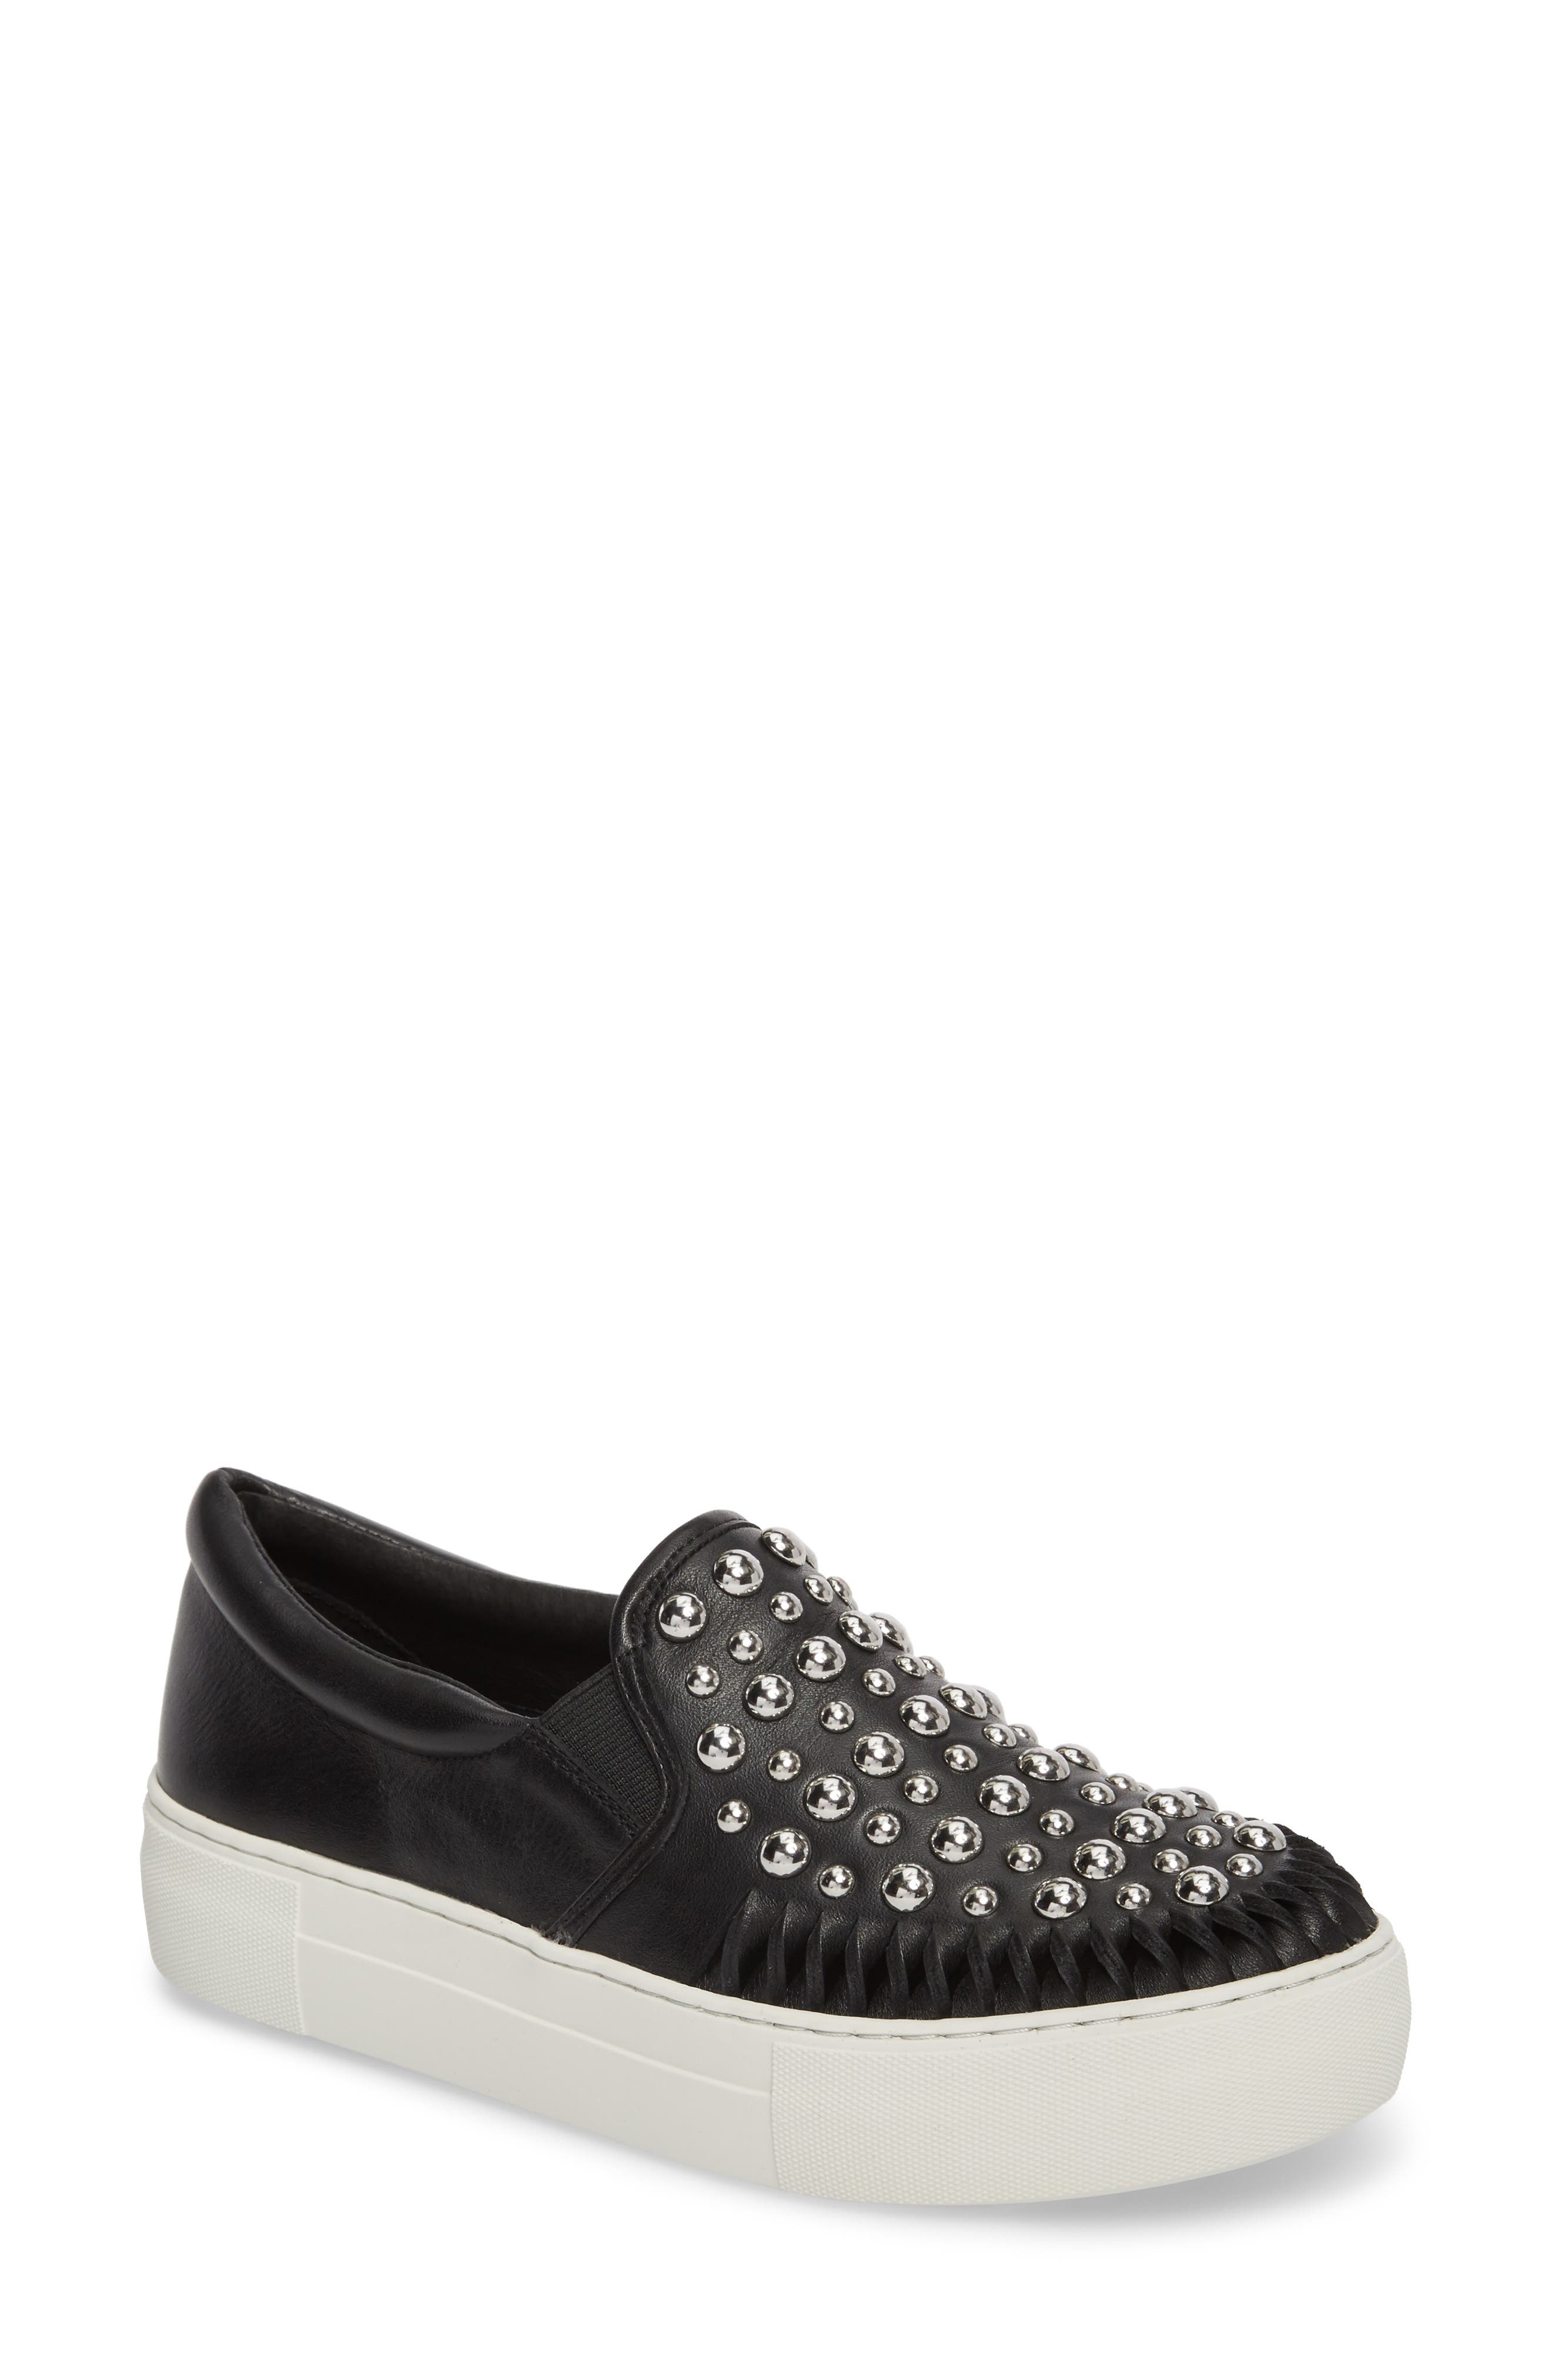 AZT Studded Slip-On Sneaker,                         Main,                         color, 015